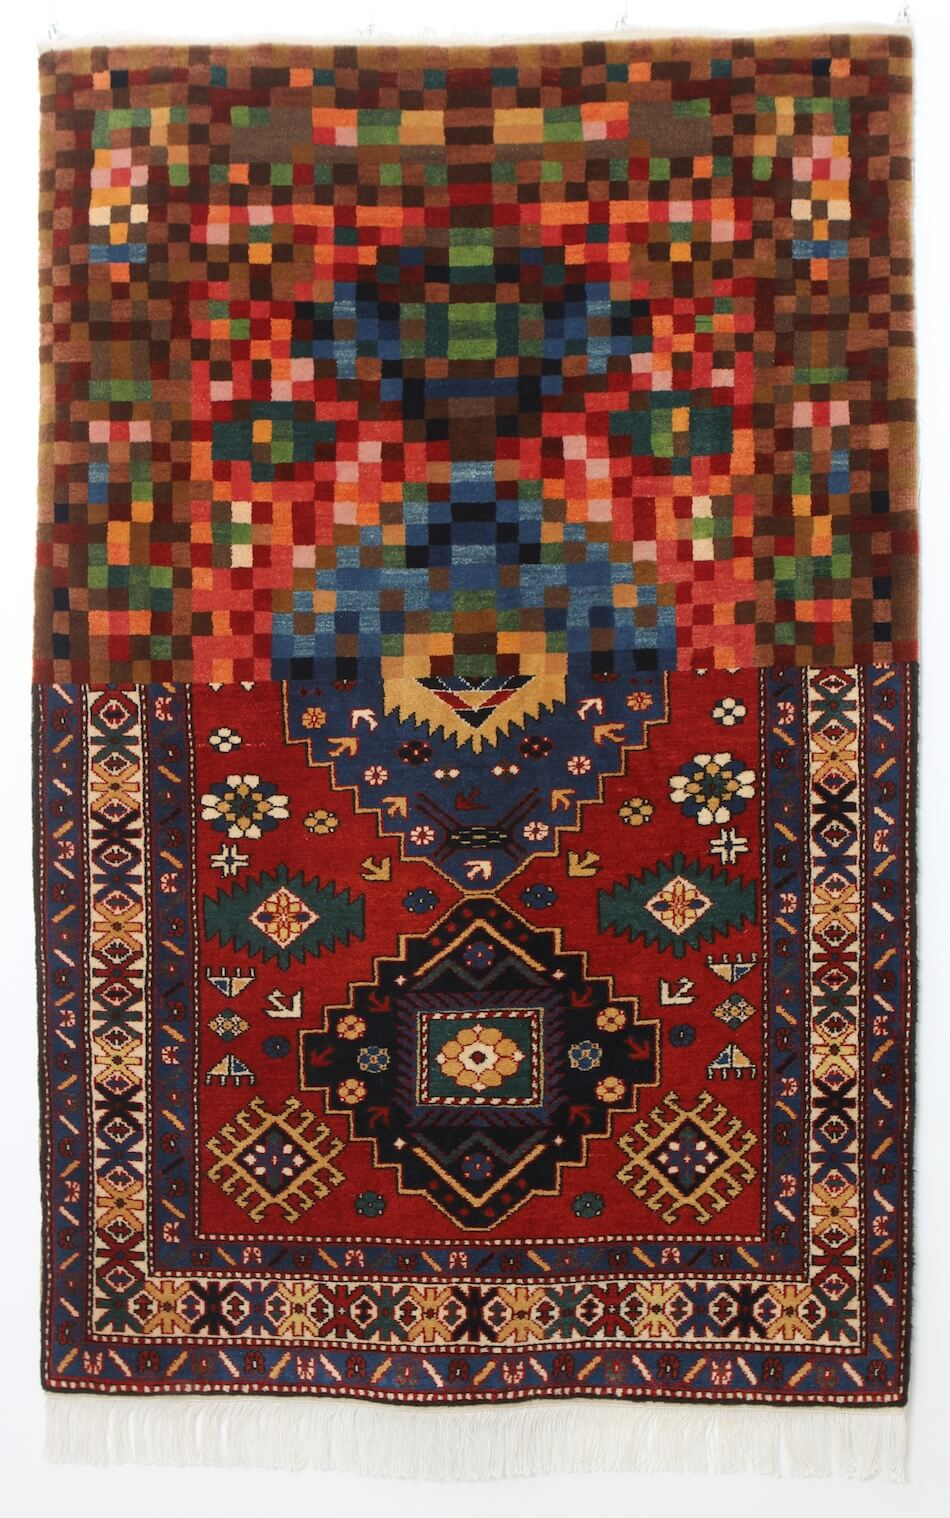 Woven Rugs by FAIG AHMED 11 (1)